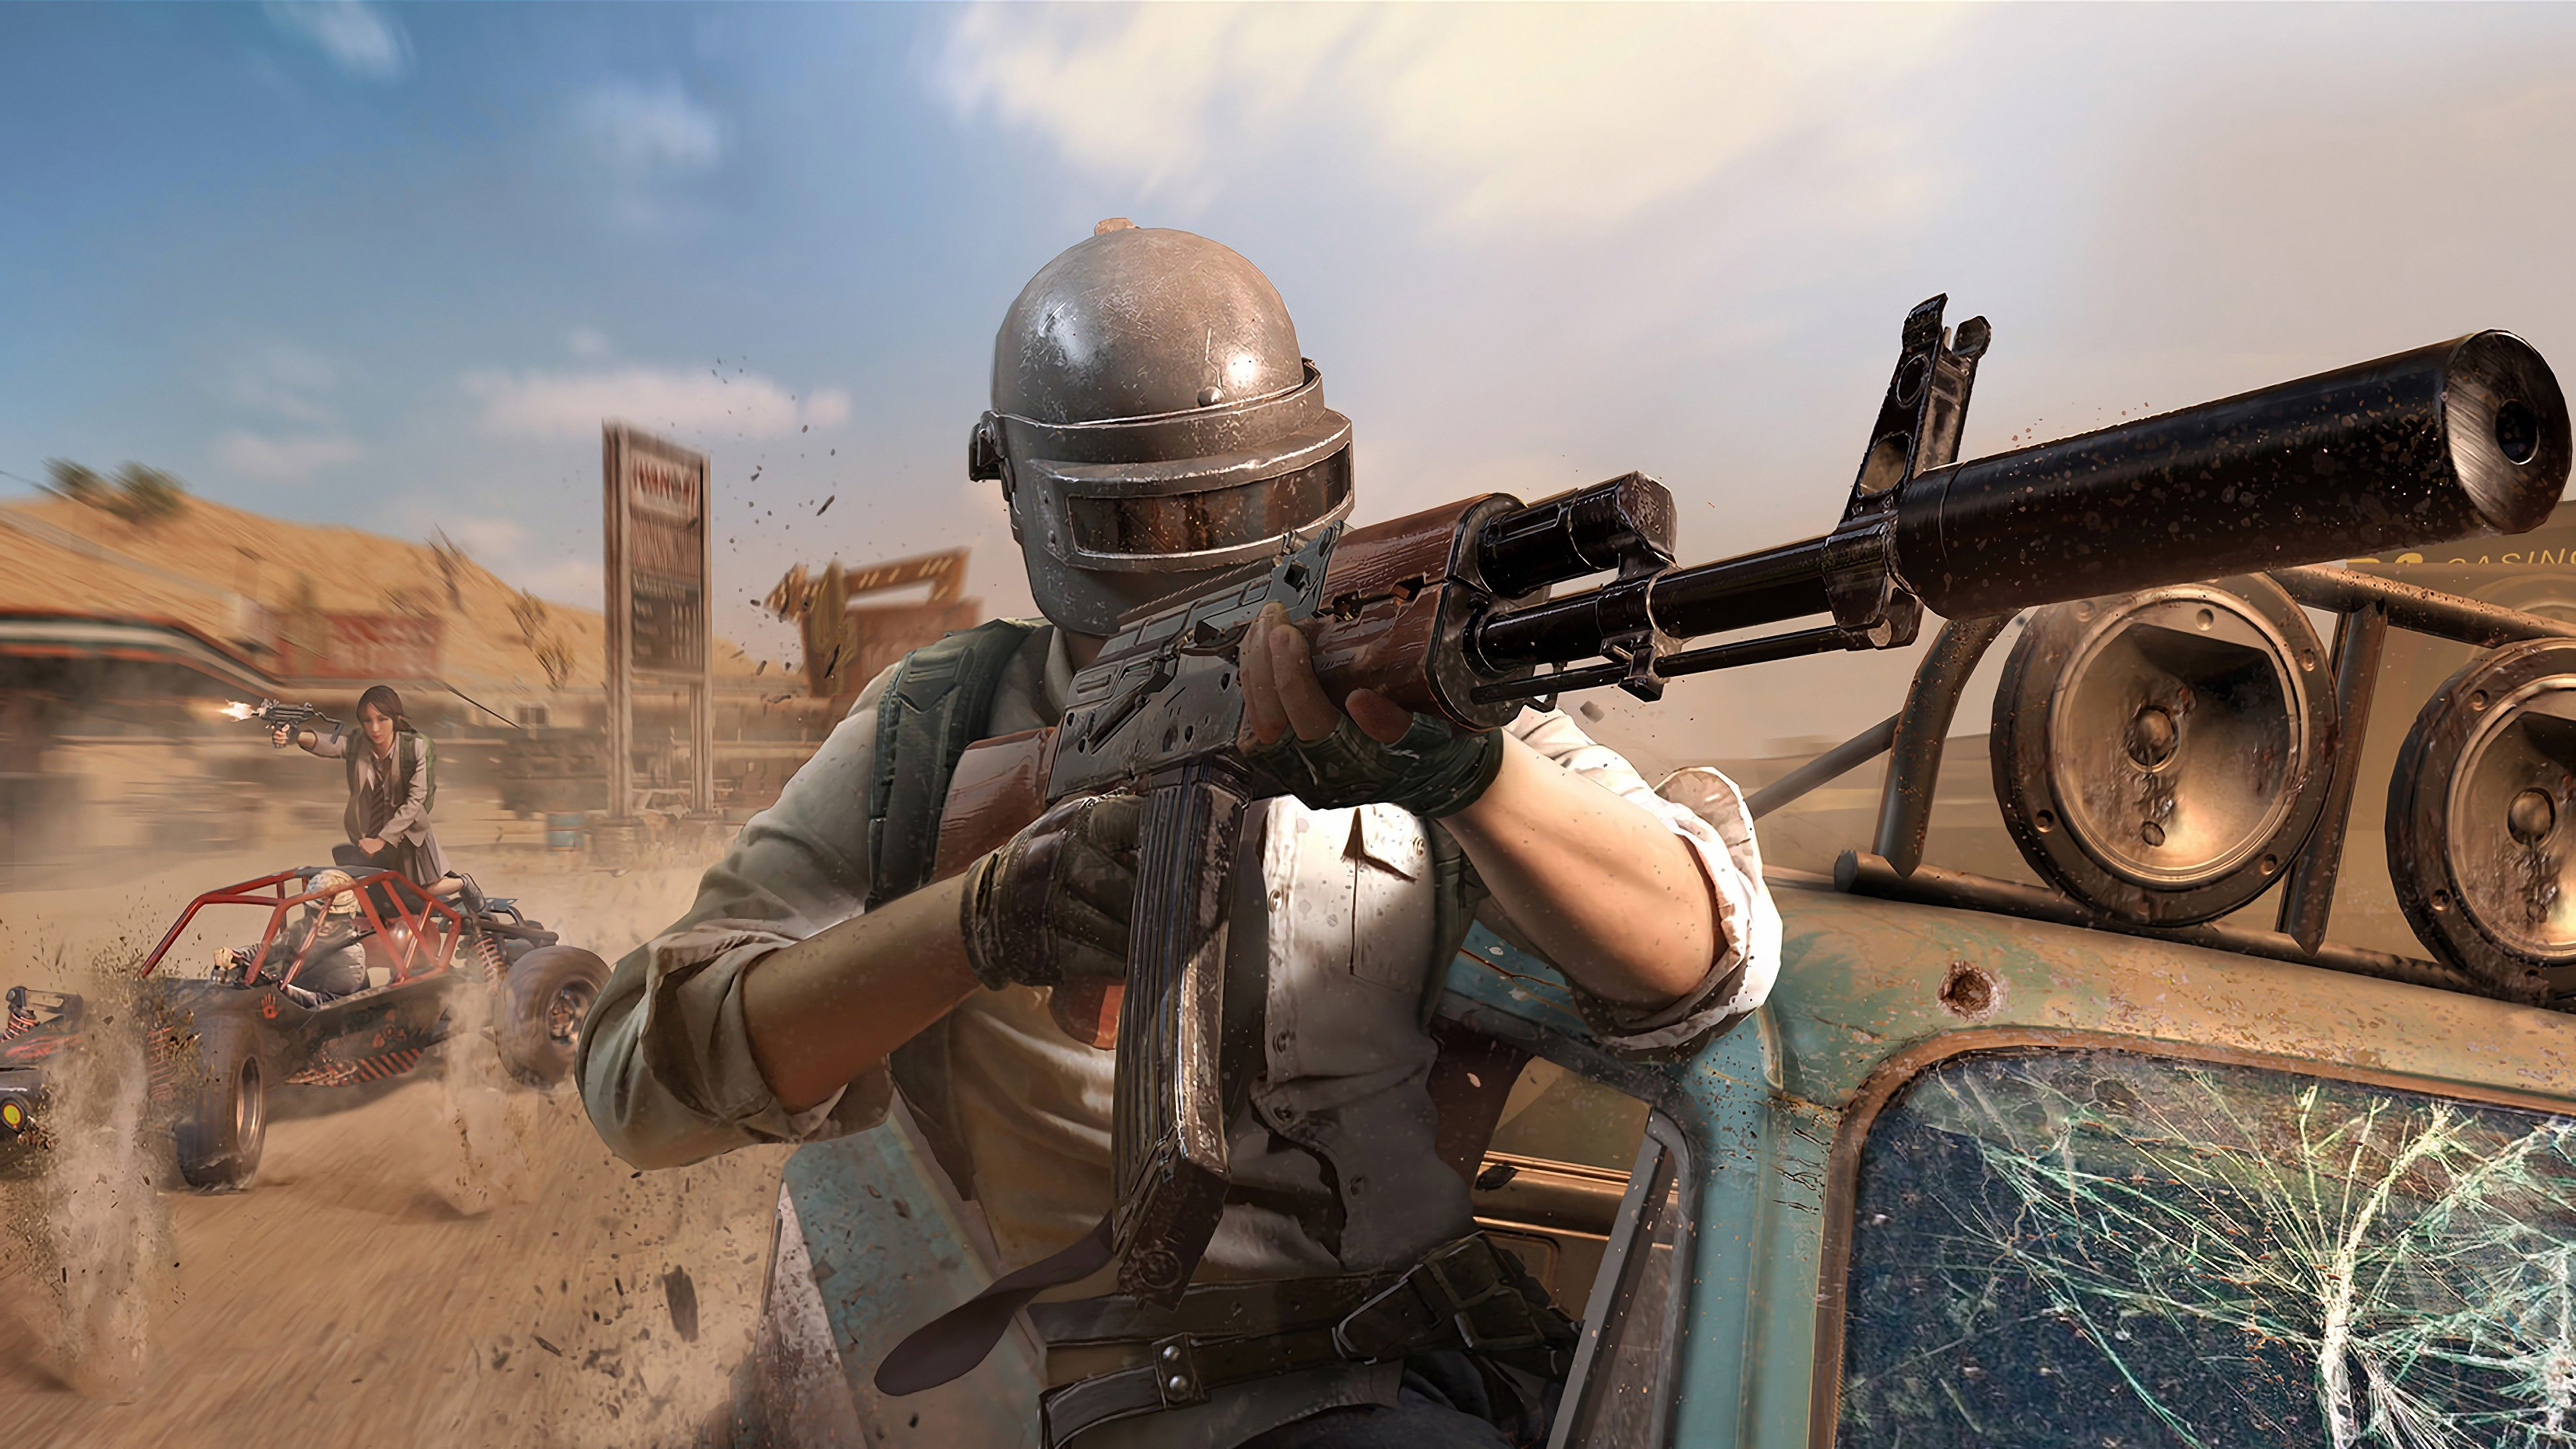 PUBG players have discovered that the game's framerate directly affects weapon recoil